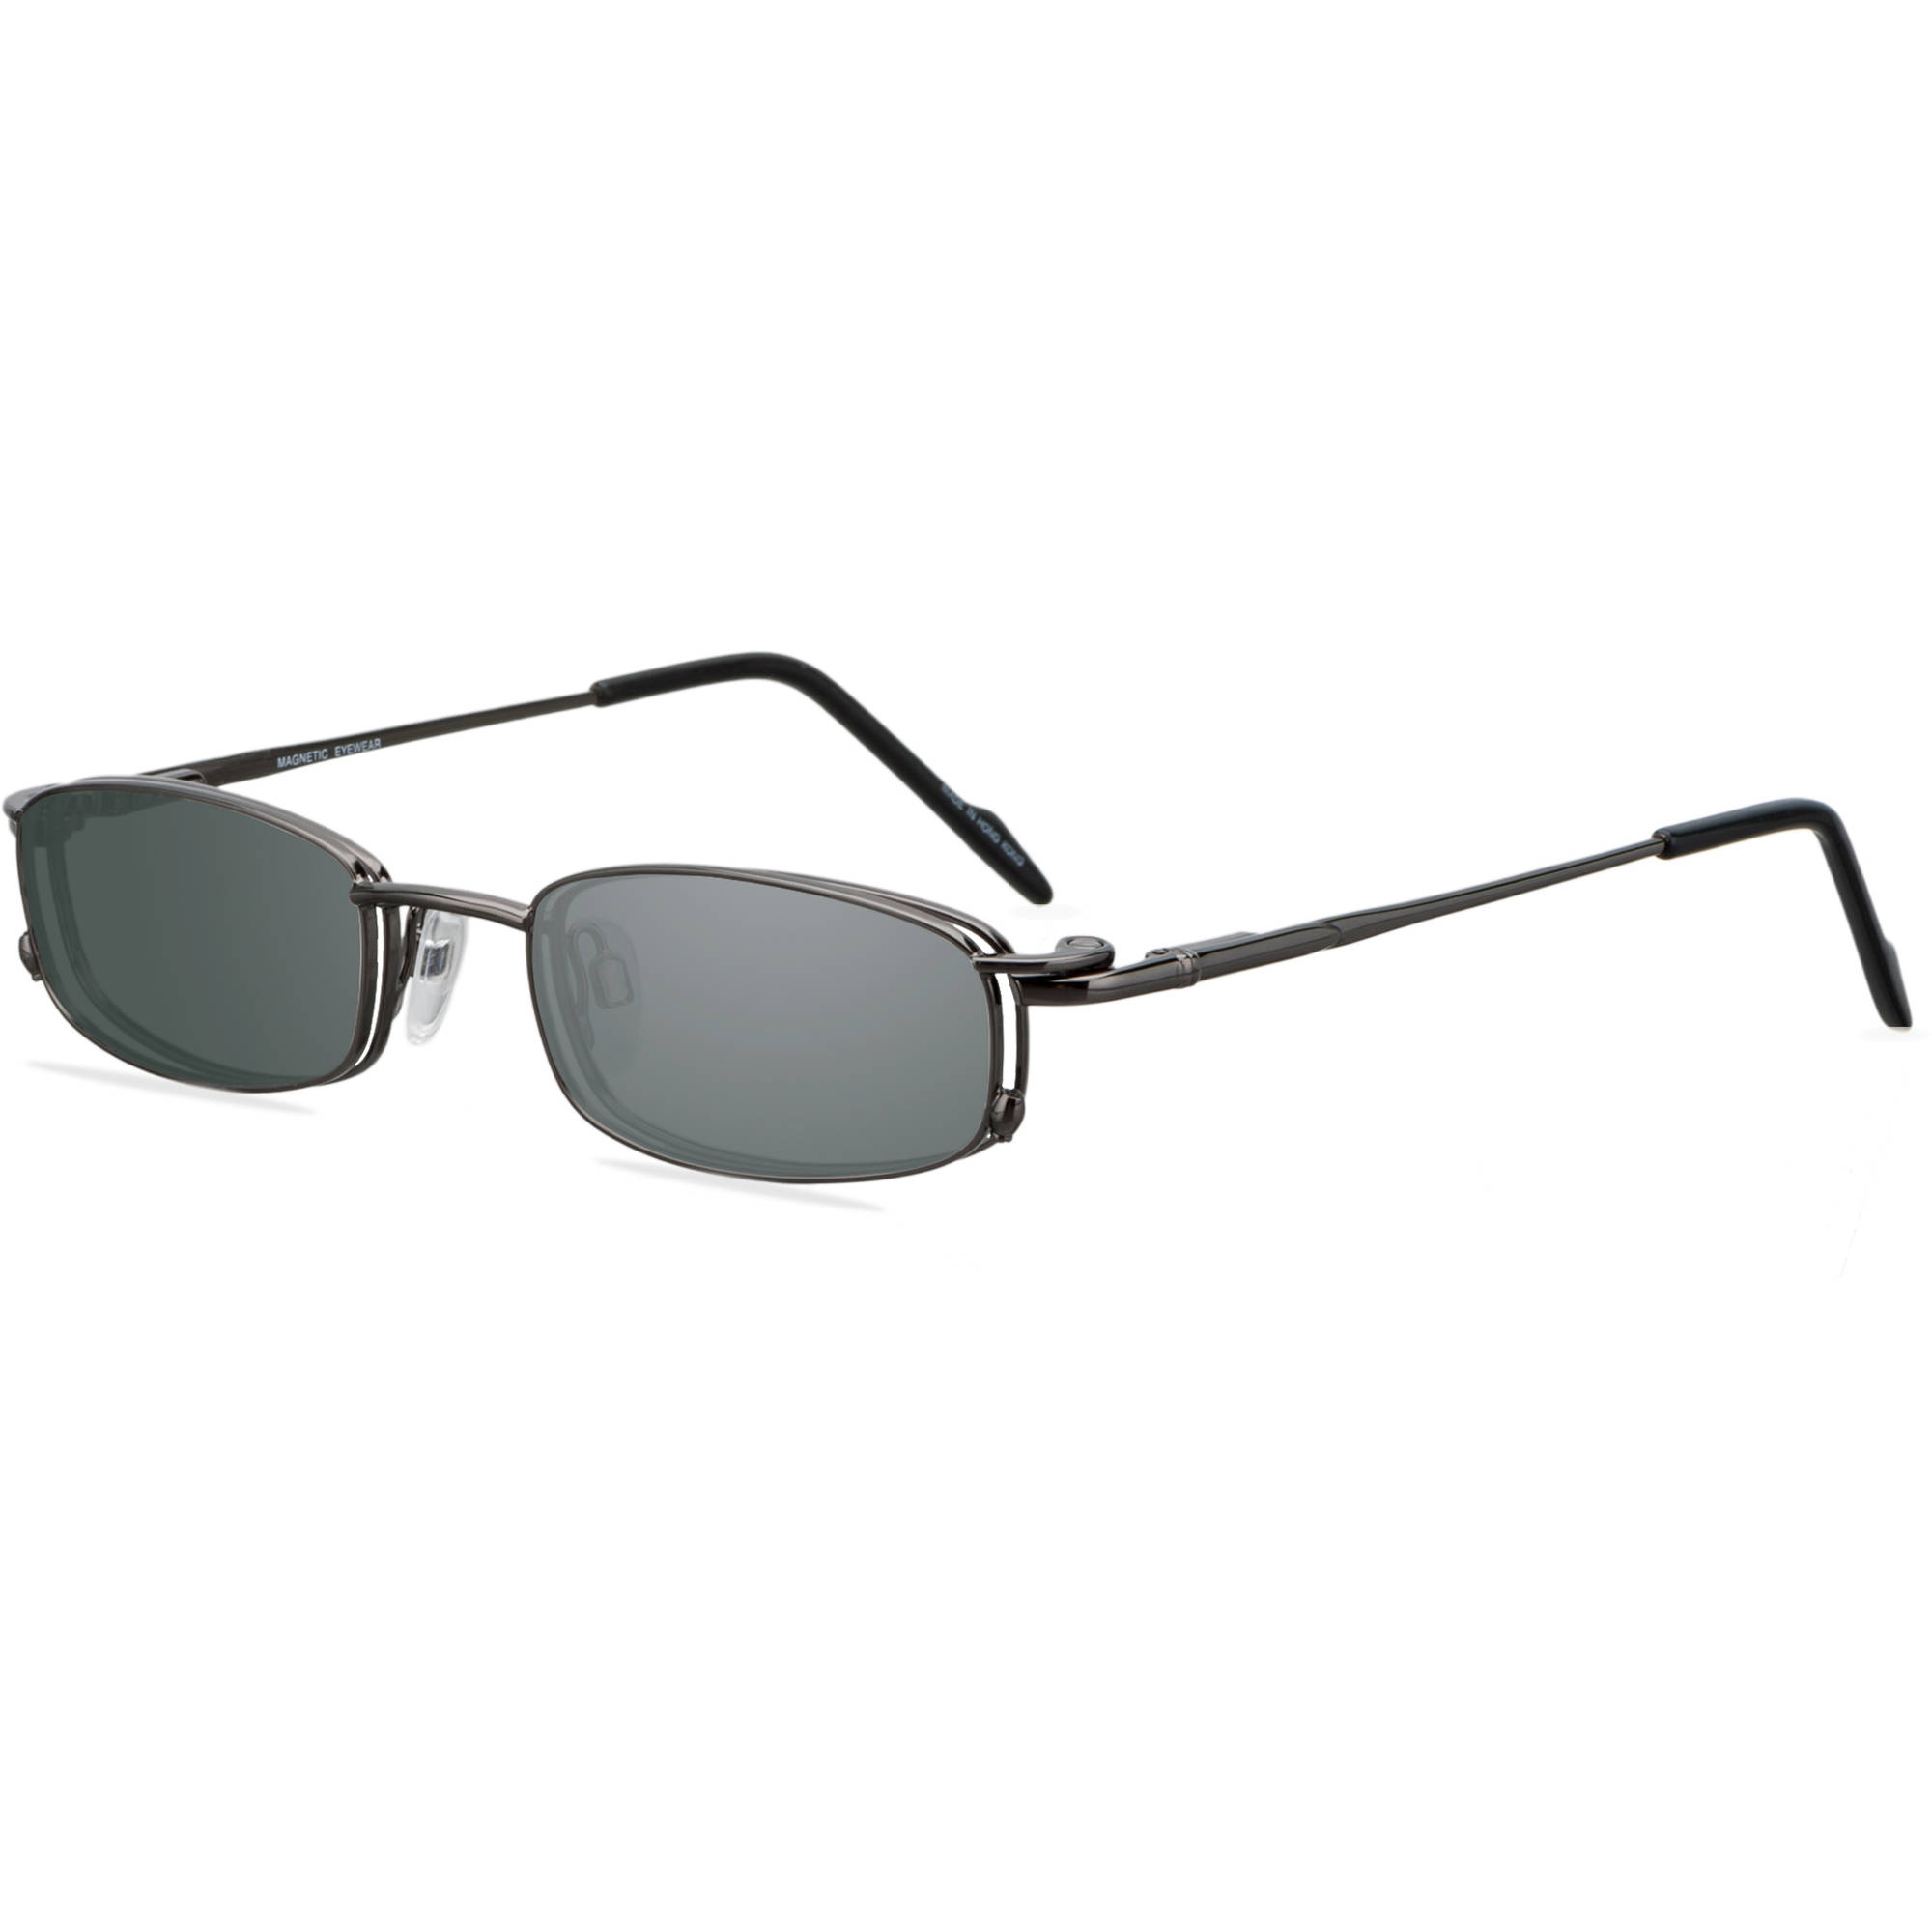 EasyClip Mens Prescription Glasses, MG747 Grey